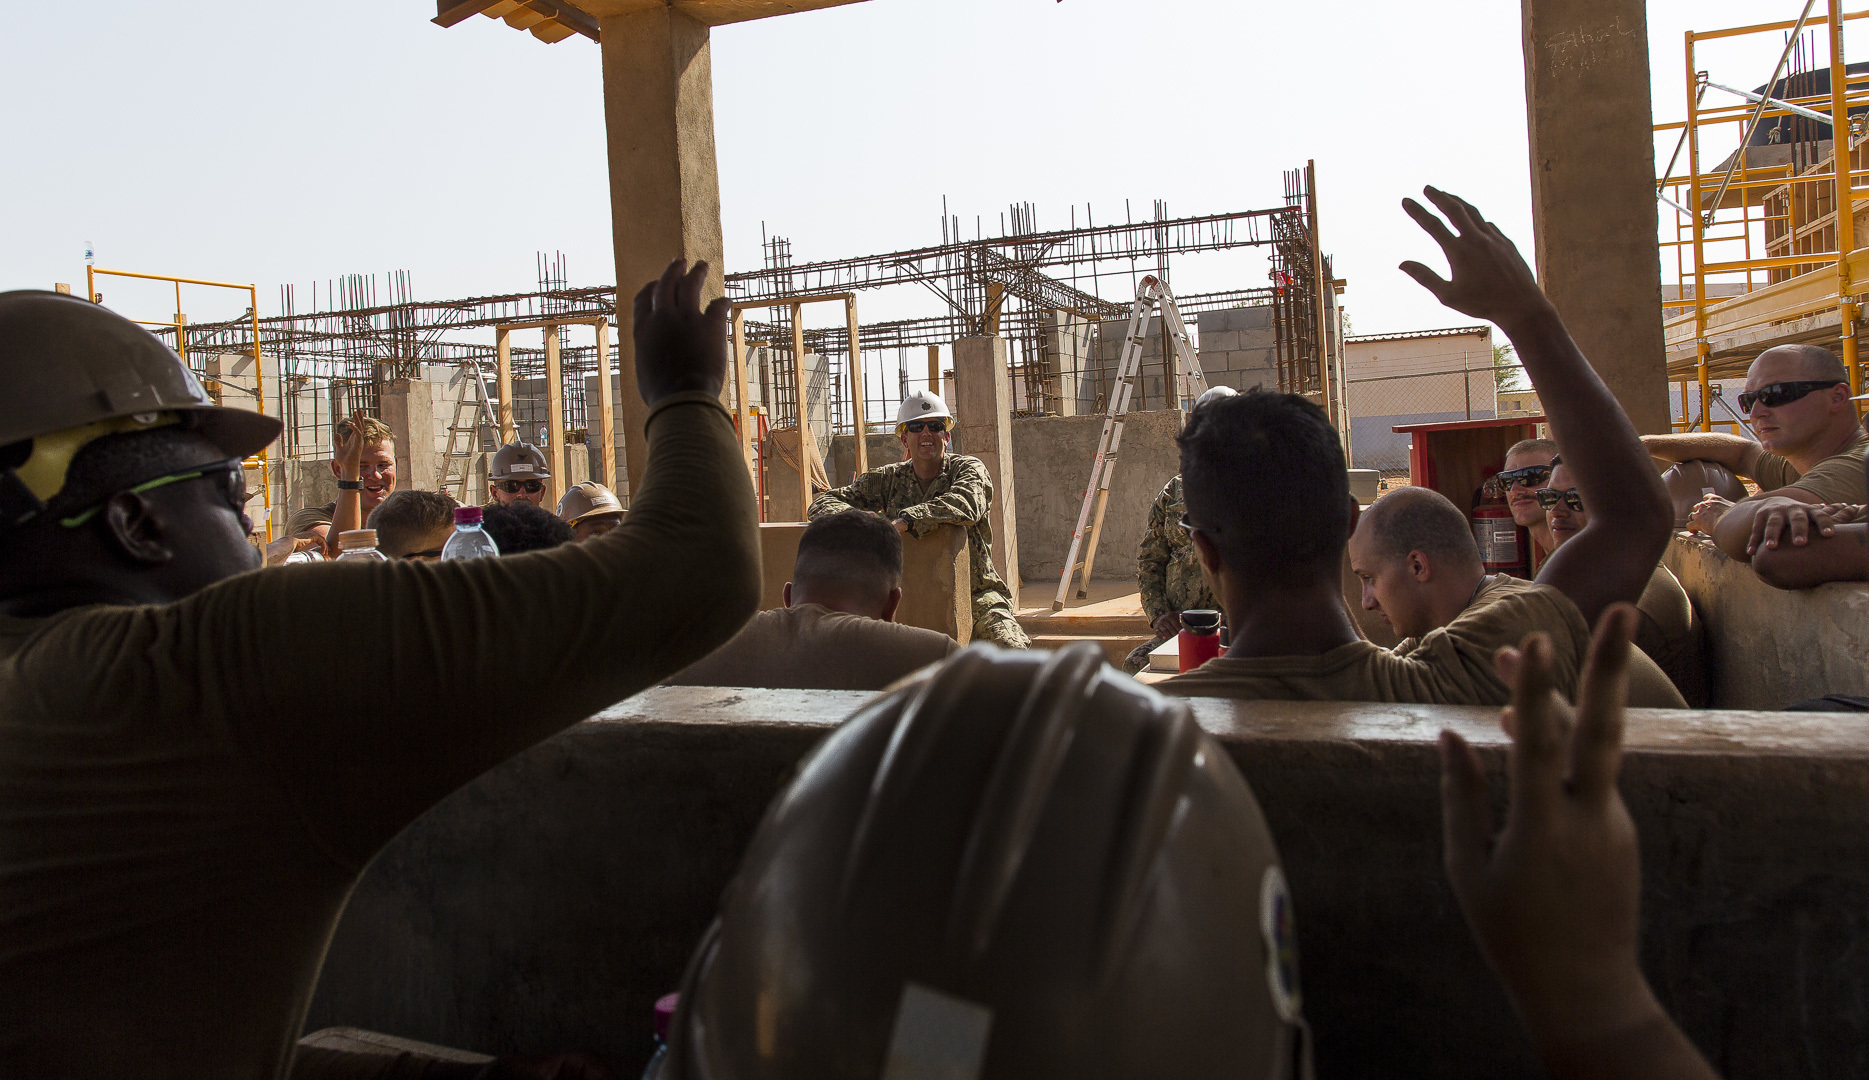 U.S Navy Civil Engineer Corps Cmdr. Michael Meno, Naval Mobile Construction Battalion 1 (NMCB 1) commander, answers questions from Seabees assigned to a construction site in Ali Oune, Djibouti, Sept. 19, 2018. Seabees with NMCB 1 Detachment Horn of Africa are building a medical facility in Ali Oune in support of the Ministry of Health for Djibouti. (U.S. Air National Guard photo by Master Sgt. Andrew Sinclair)